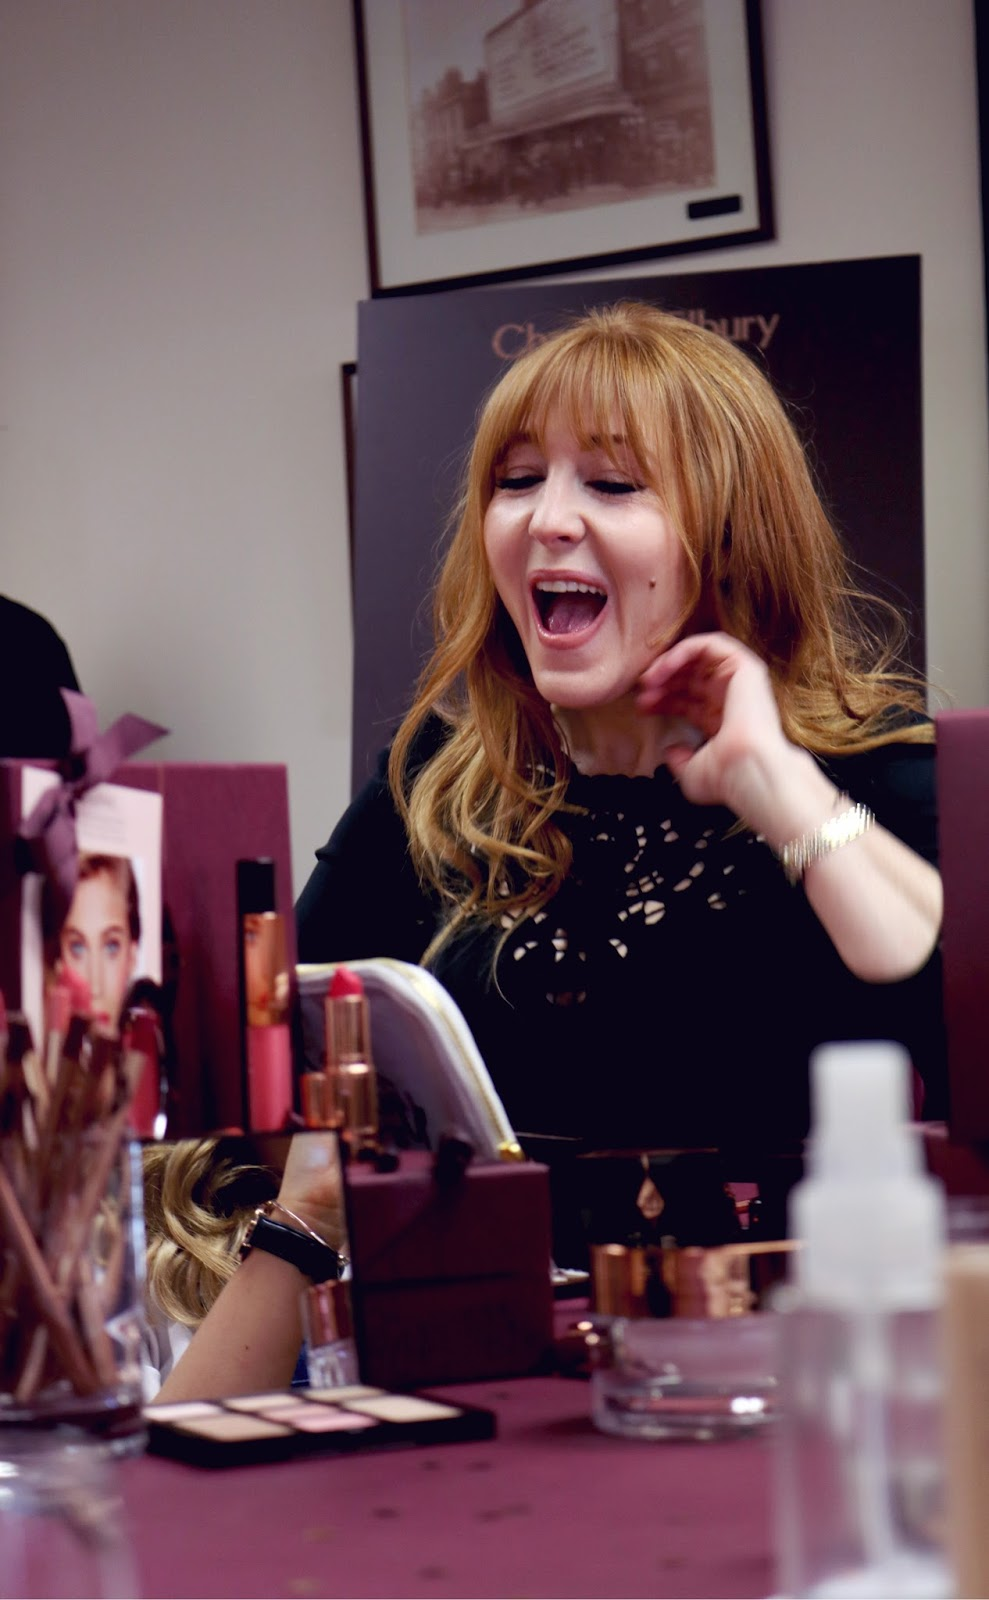 Charlotte Tilbury at Fenwicks Newcastle